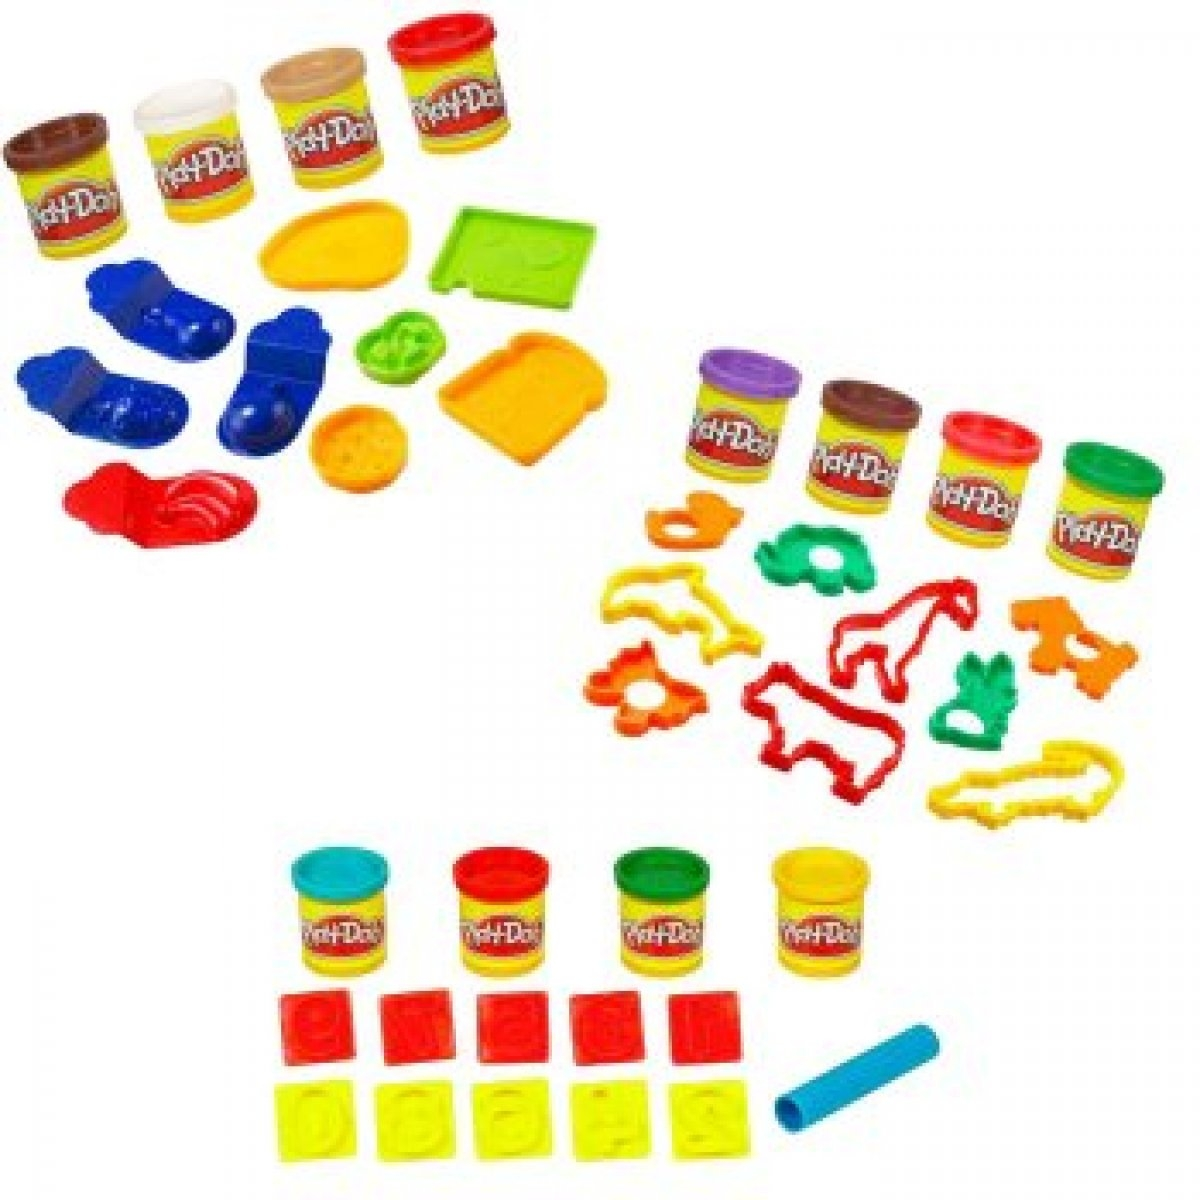 how to soften play doh clay